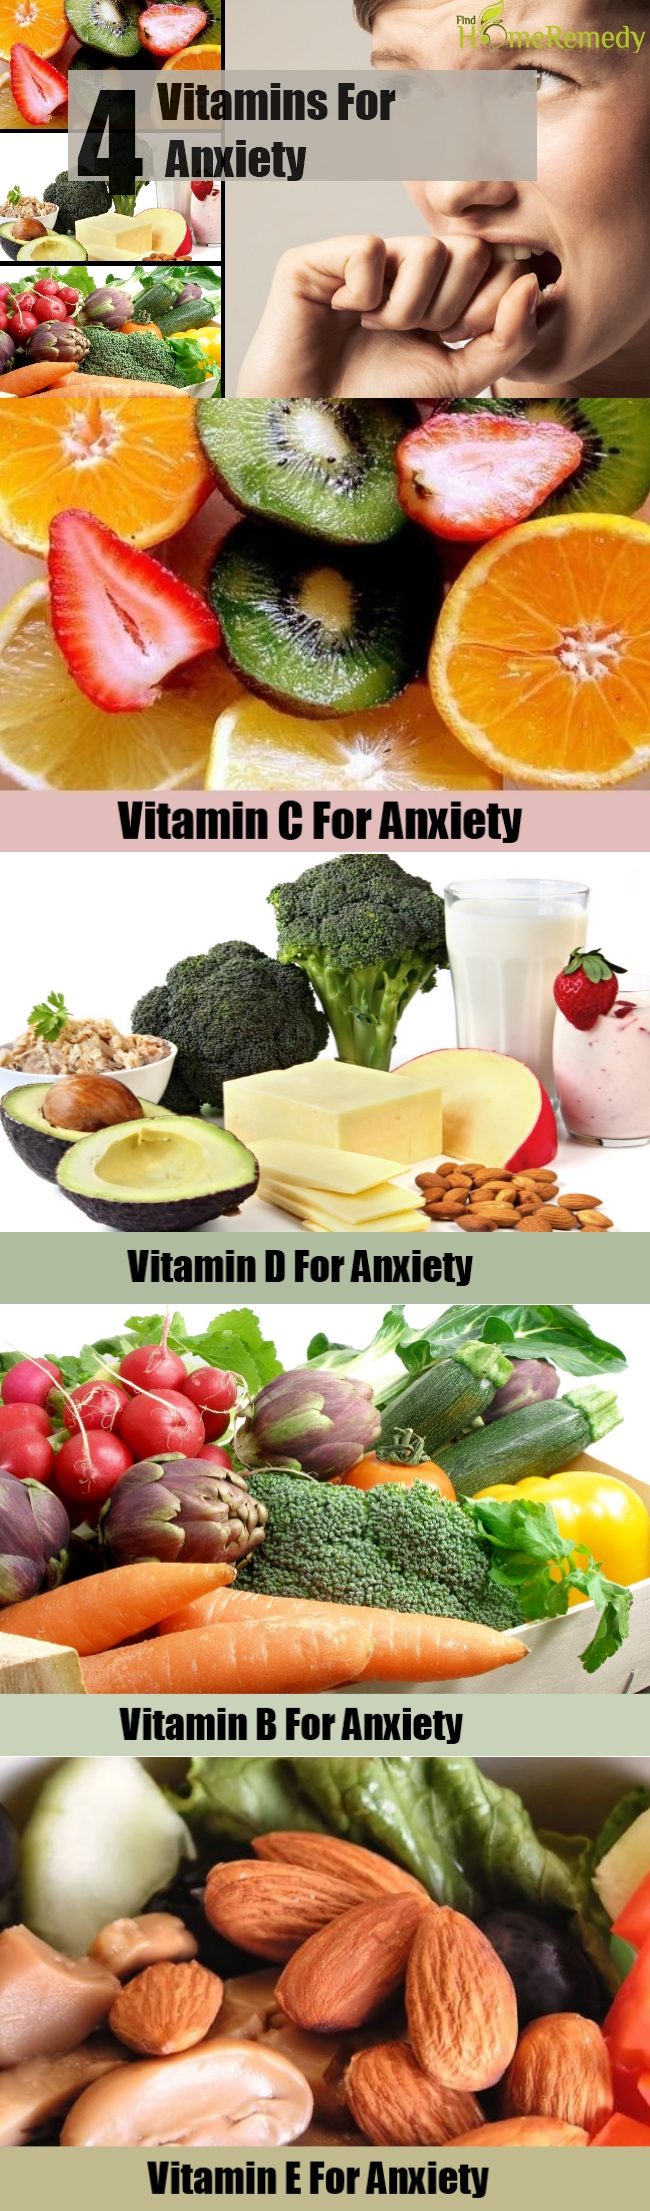 4 Vitamins For Anxiety